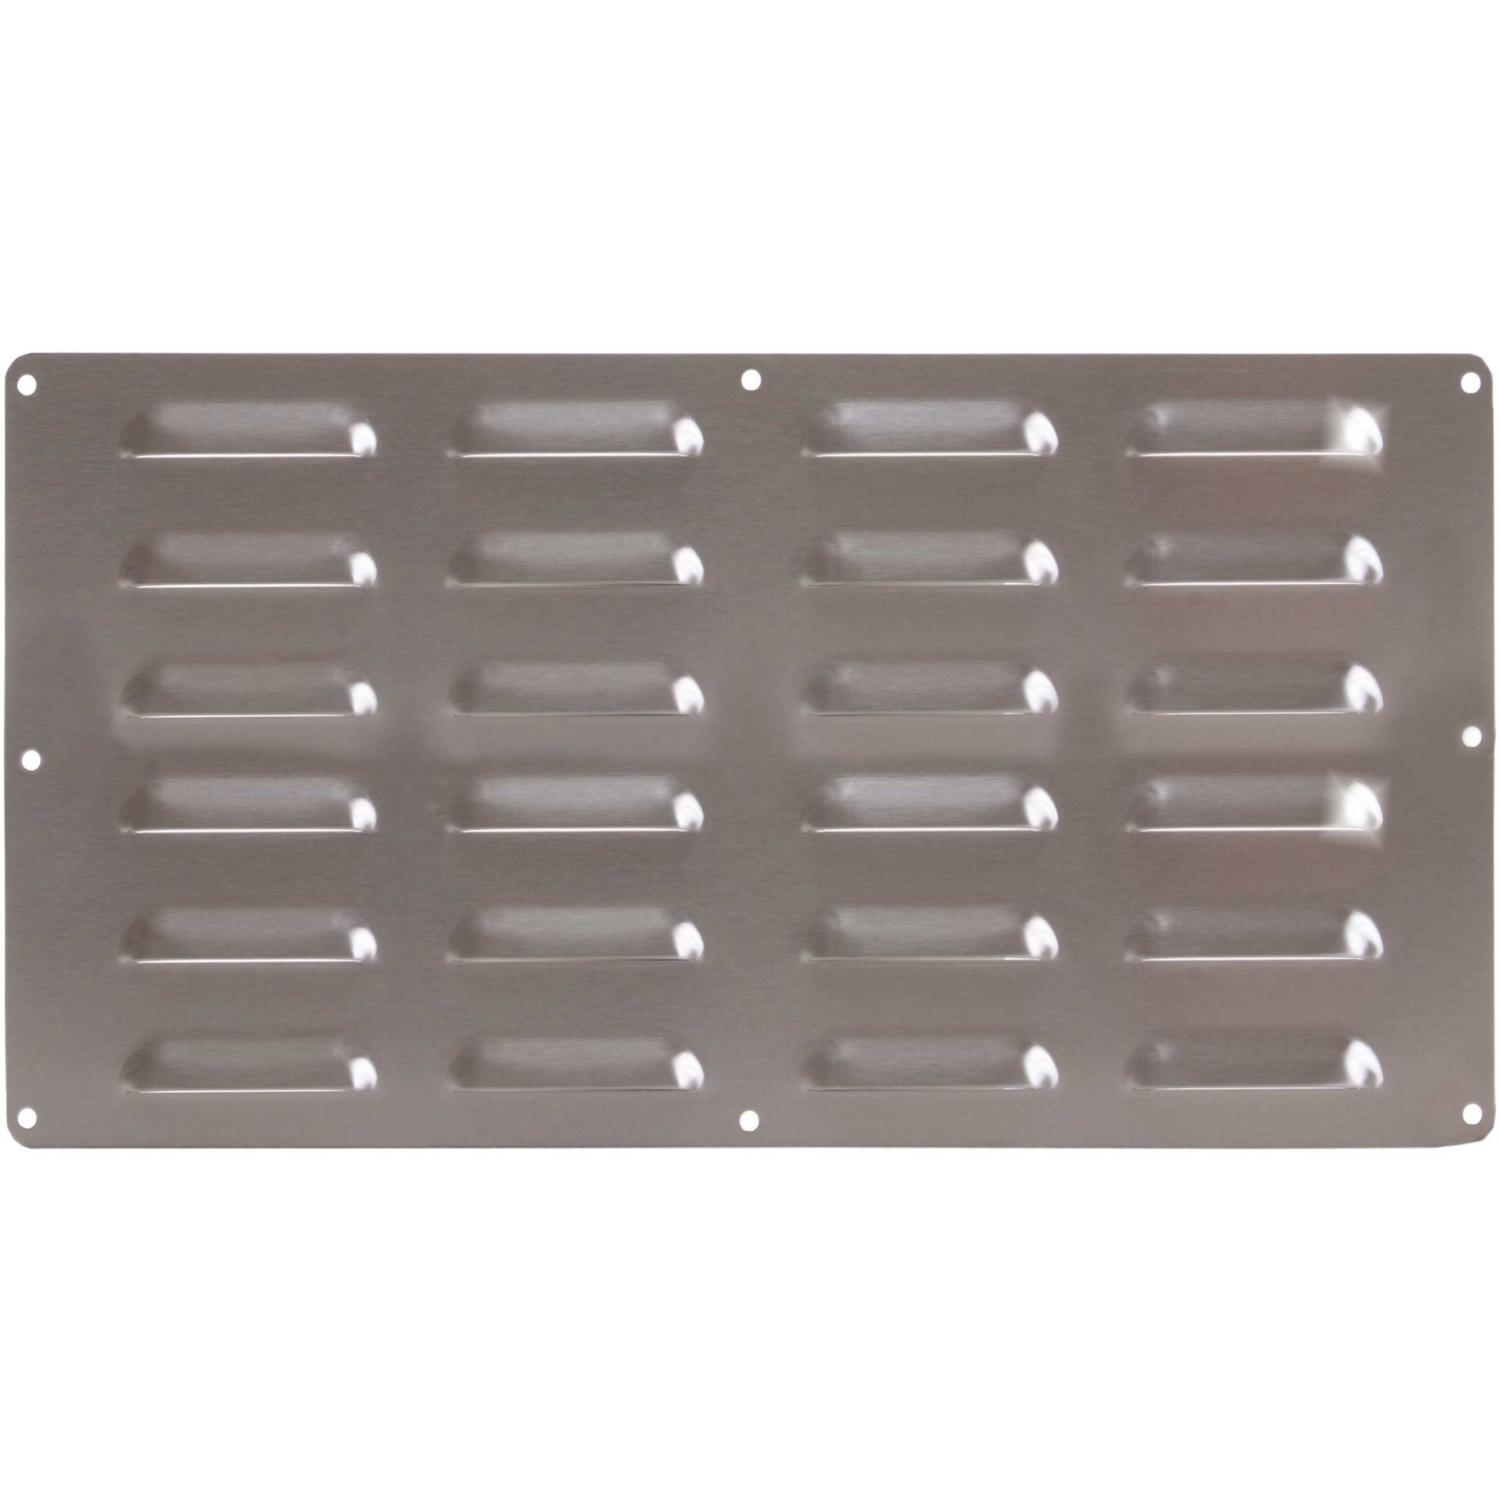 BBQ Guys 10 X 18 Stainless Steel Island Vent